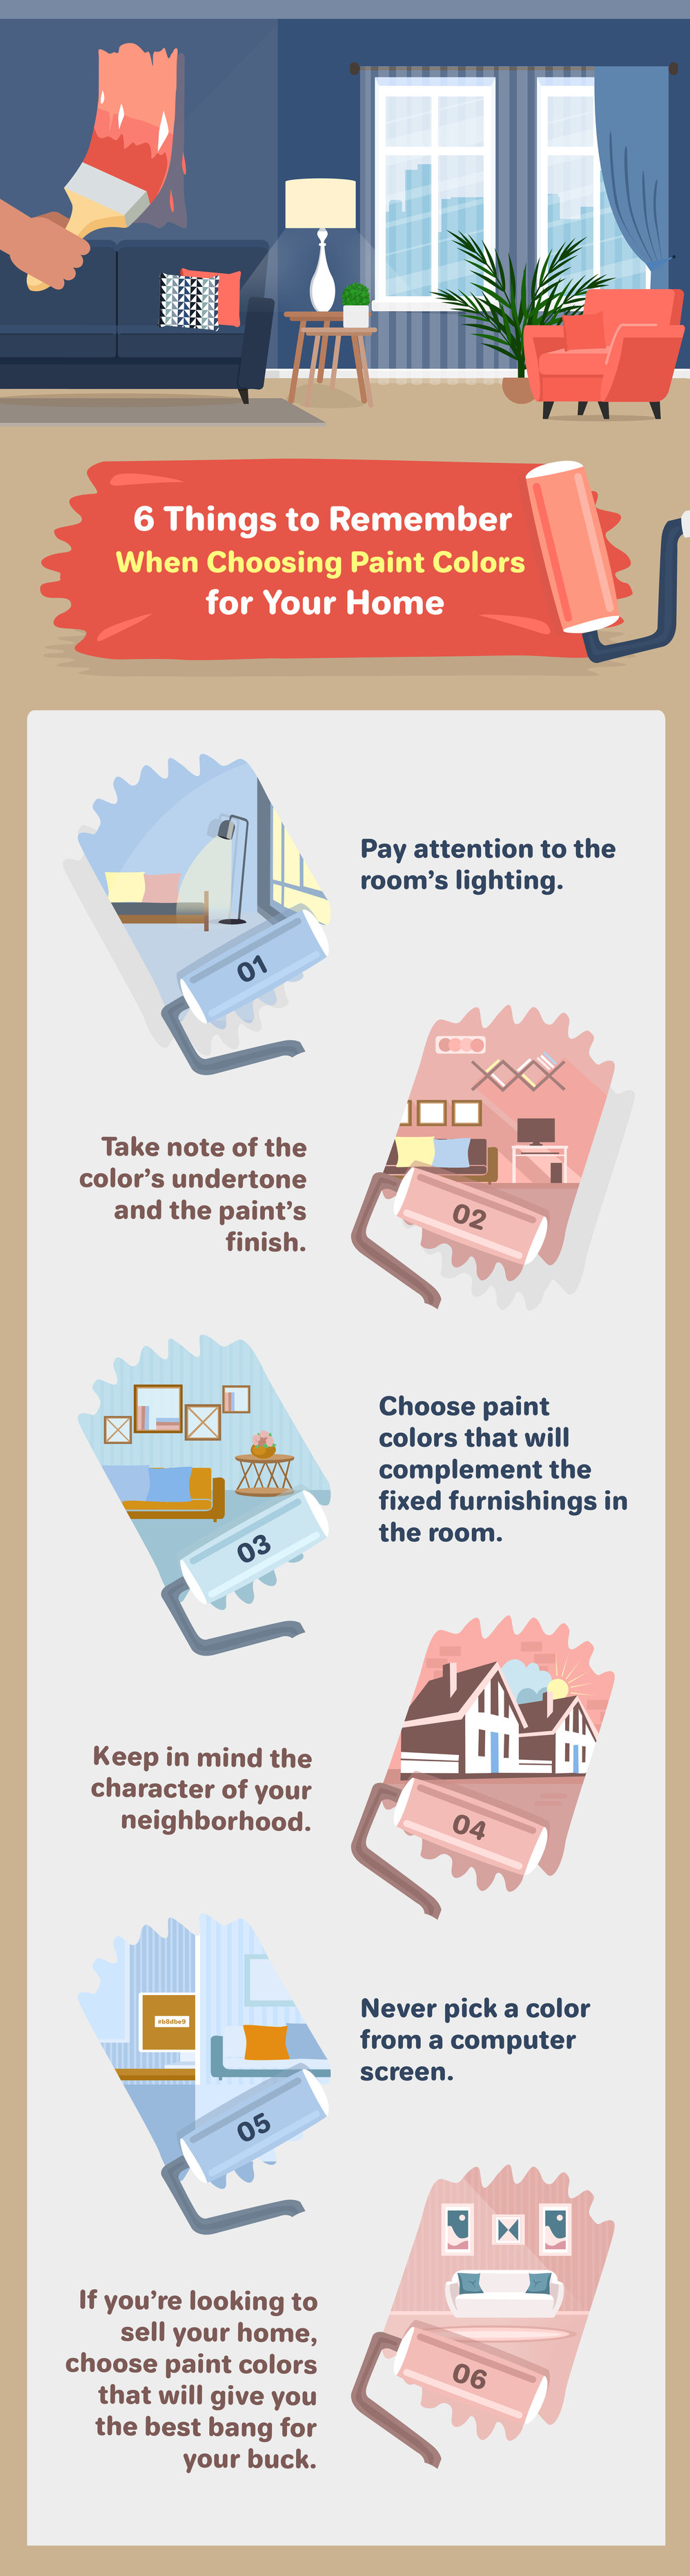 6 Things to Remember When Choosing Paint Colors for Your Home